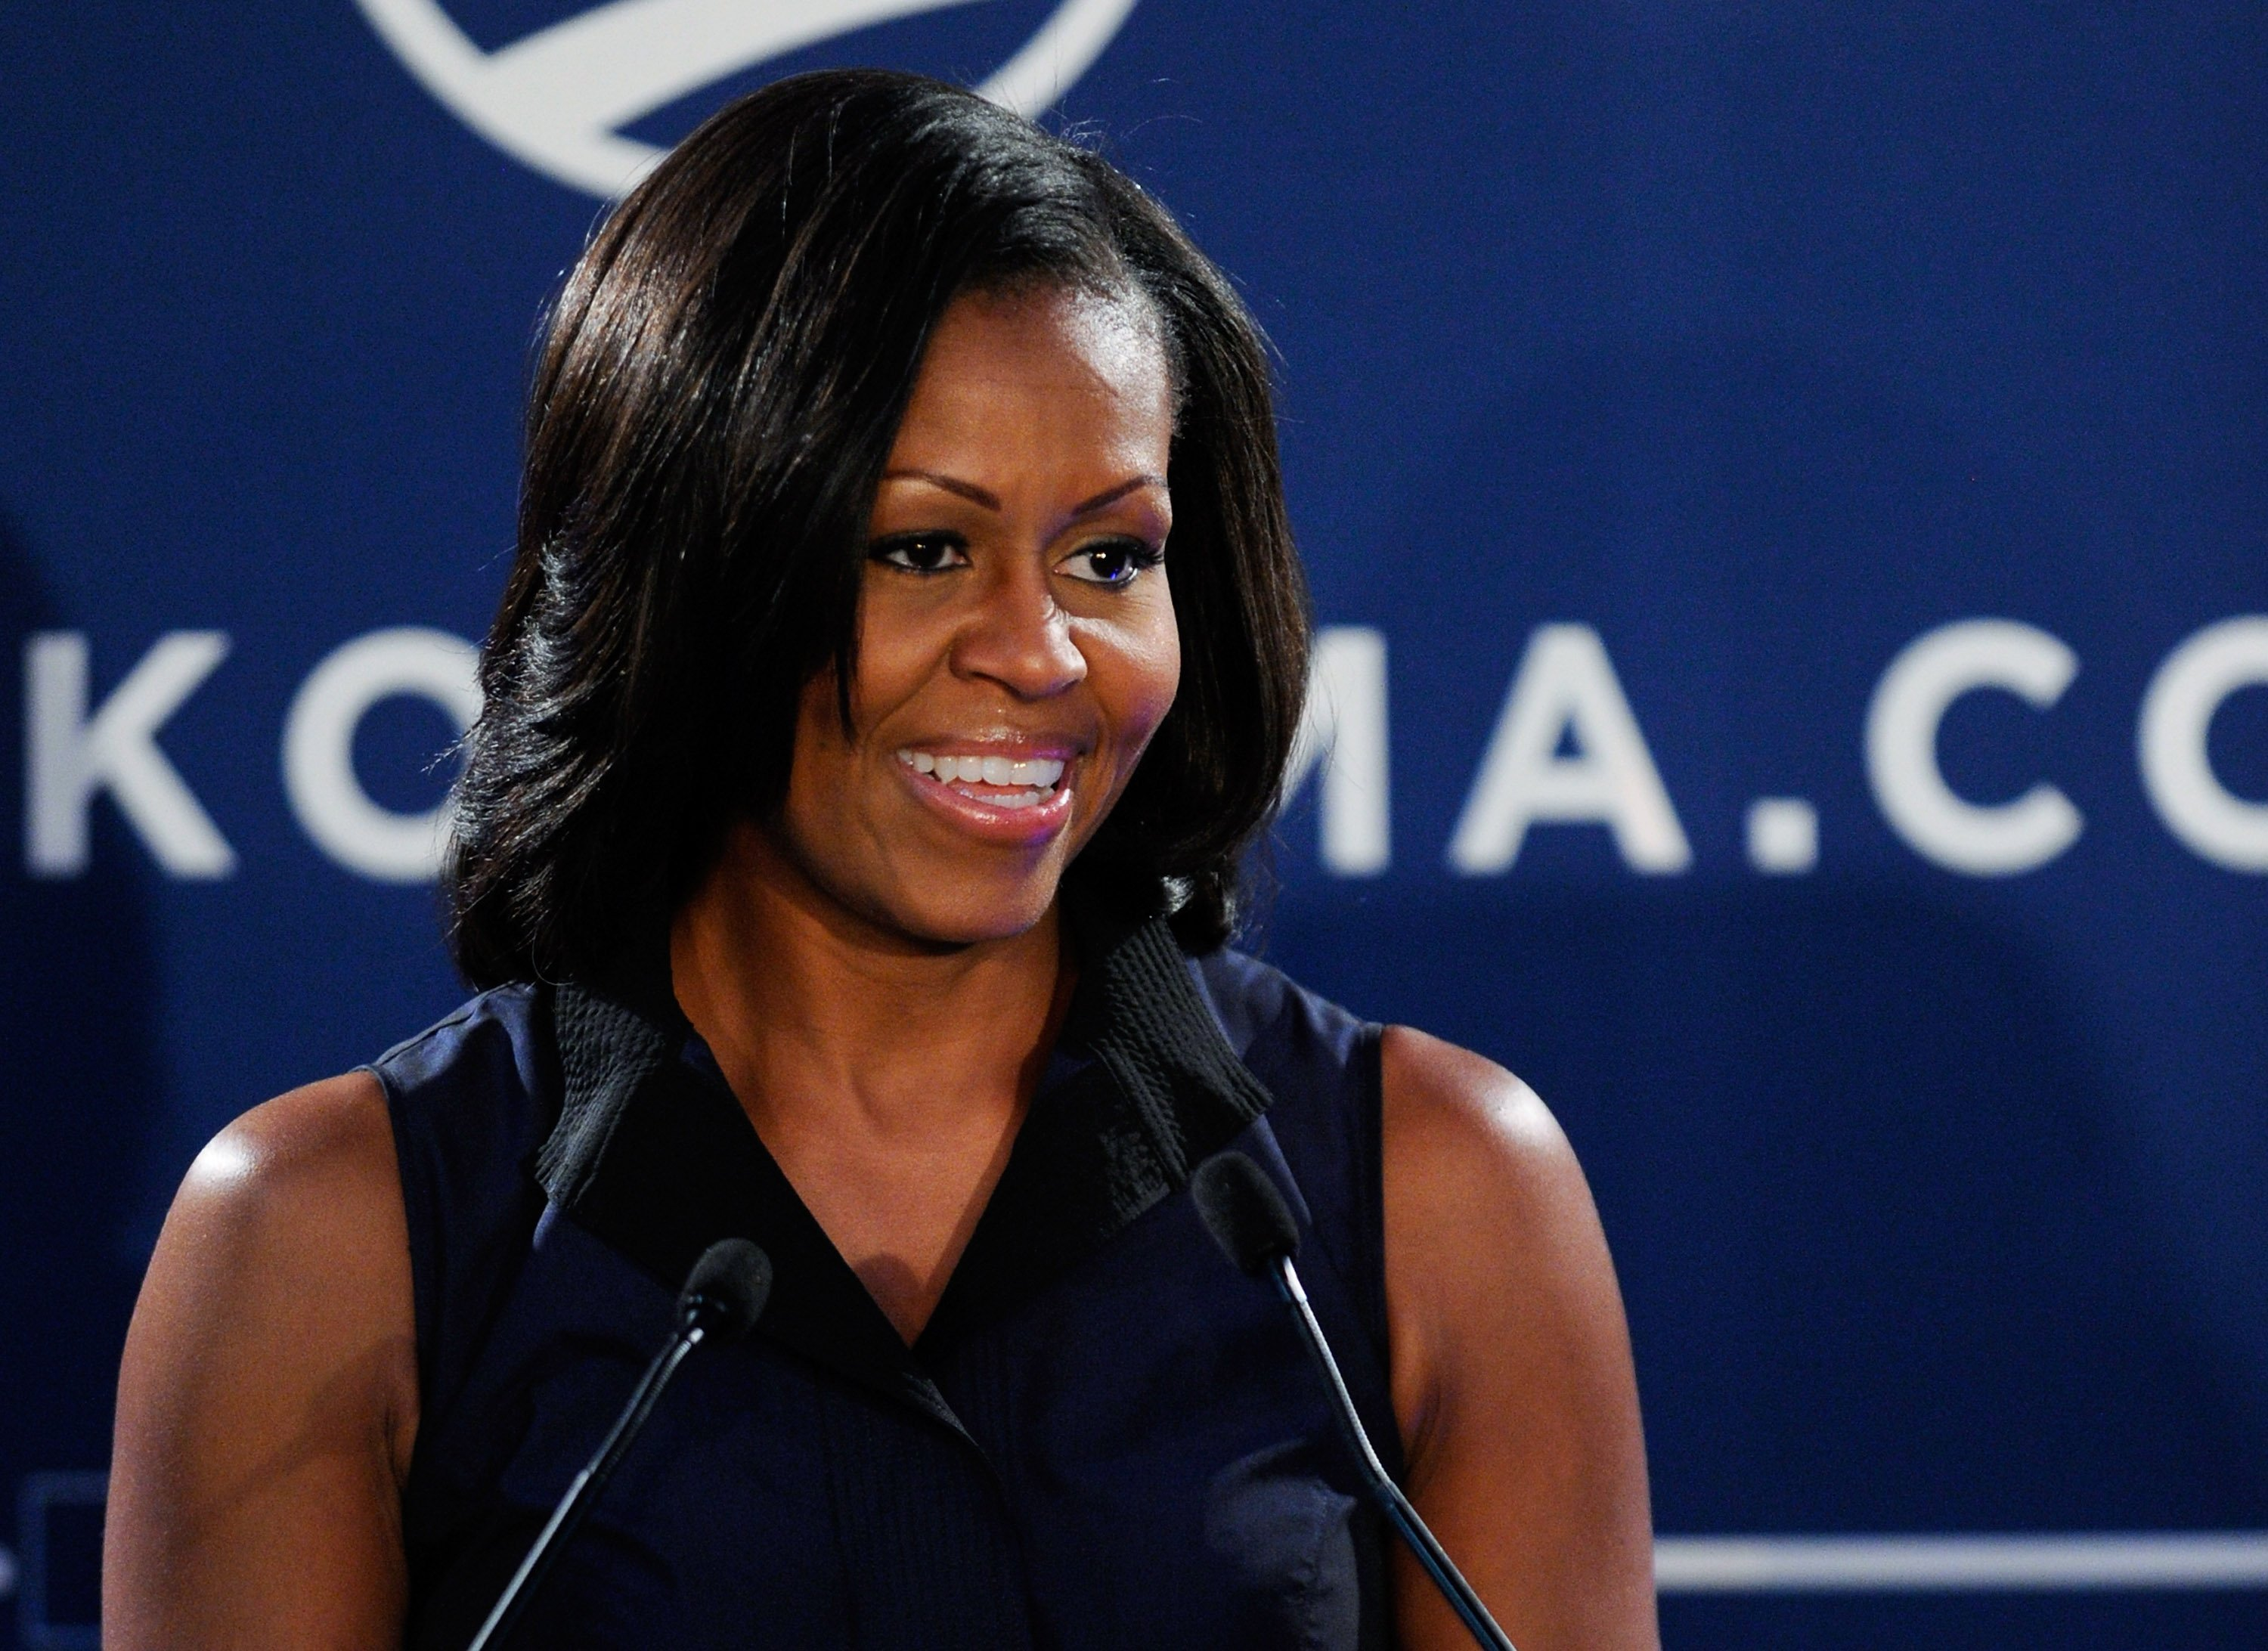 Michelle Obama at a speaking engagement as First Lady in 2012. | Photo: Getty Images